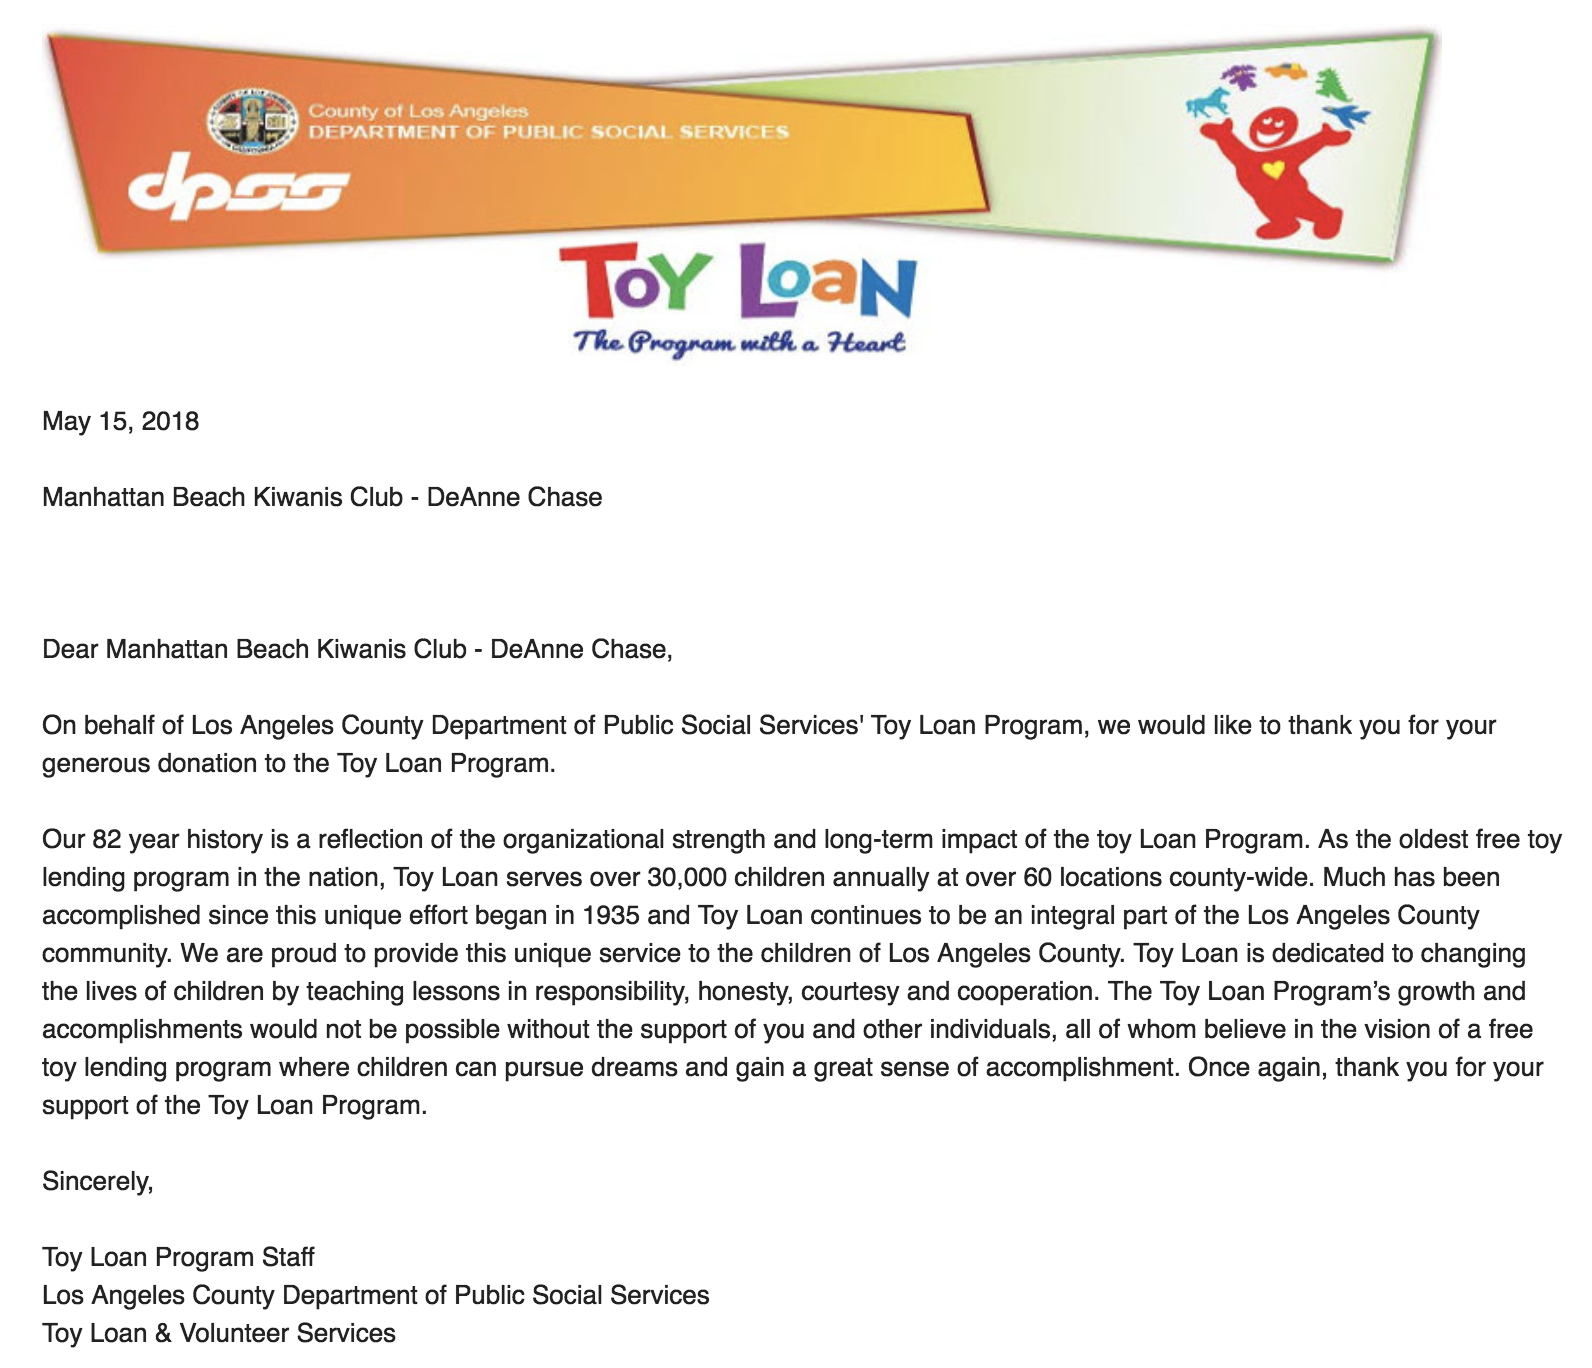 toy loan letter.png